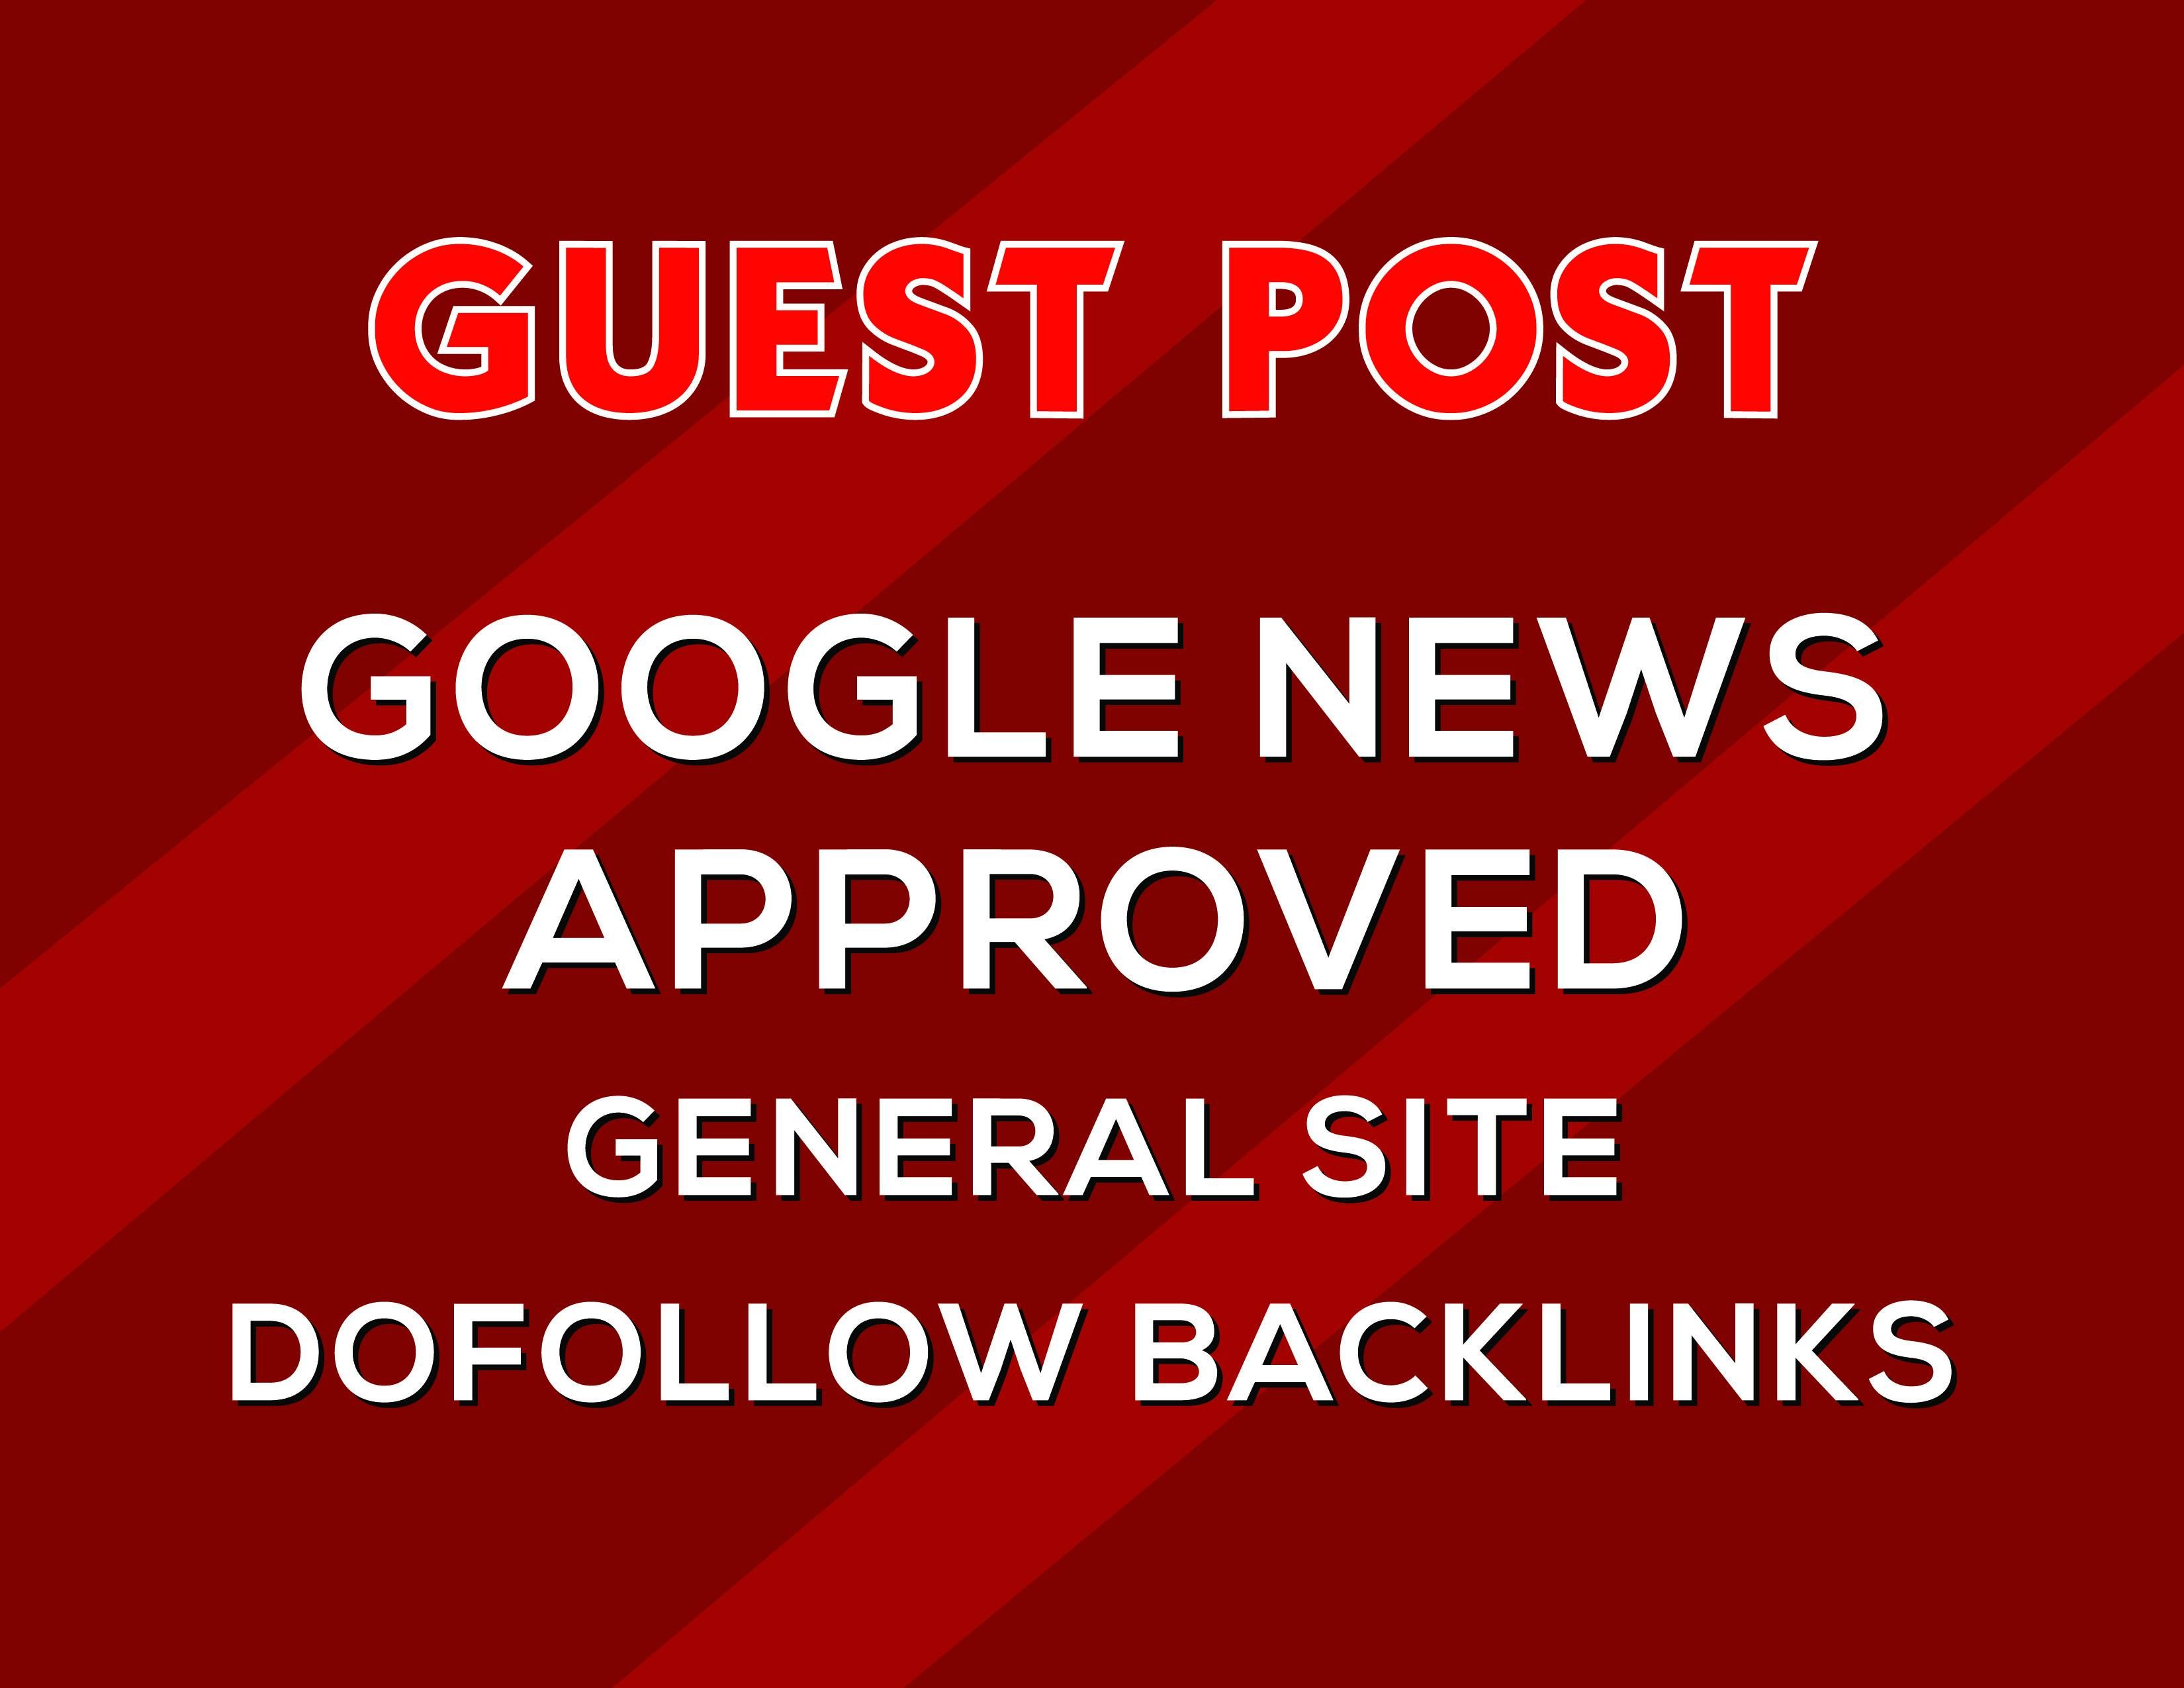 Provide guest post on kinnt. com google approved news site permanent dofollow backlink